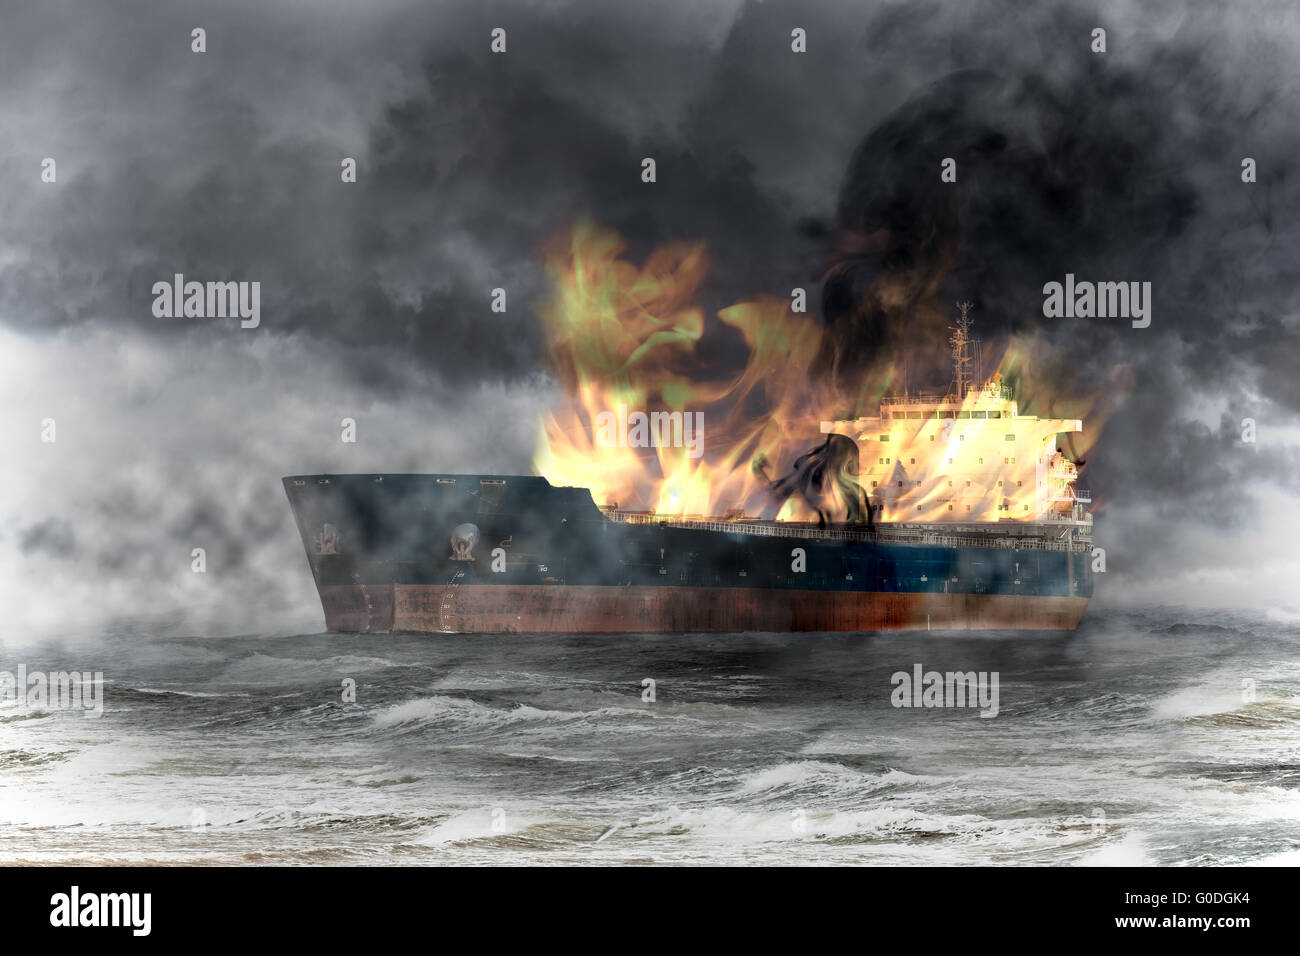 Burning tanker ship on sea at storm. Stock Photo